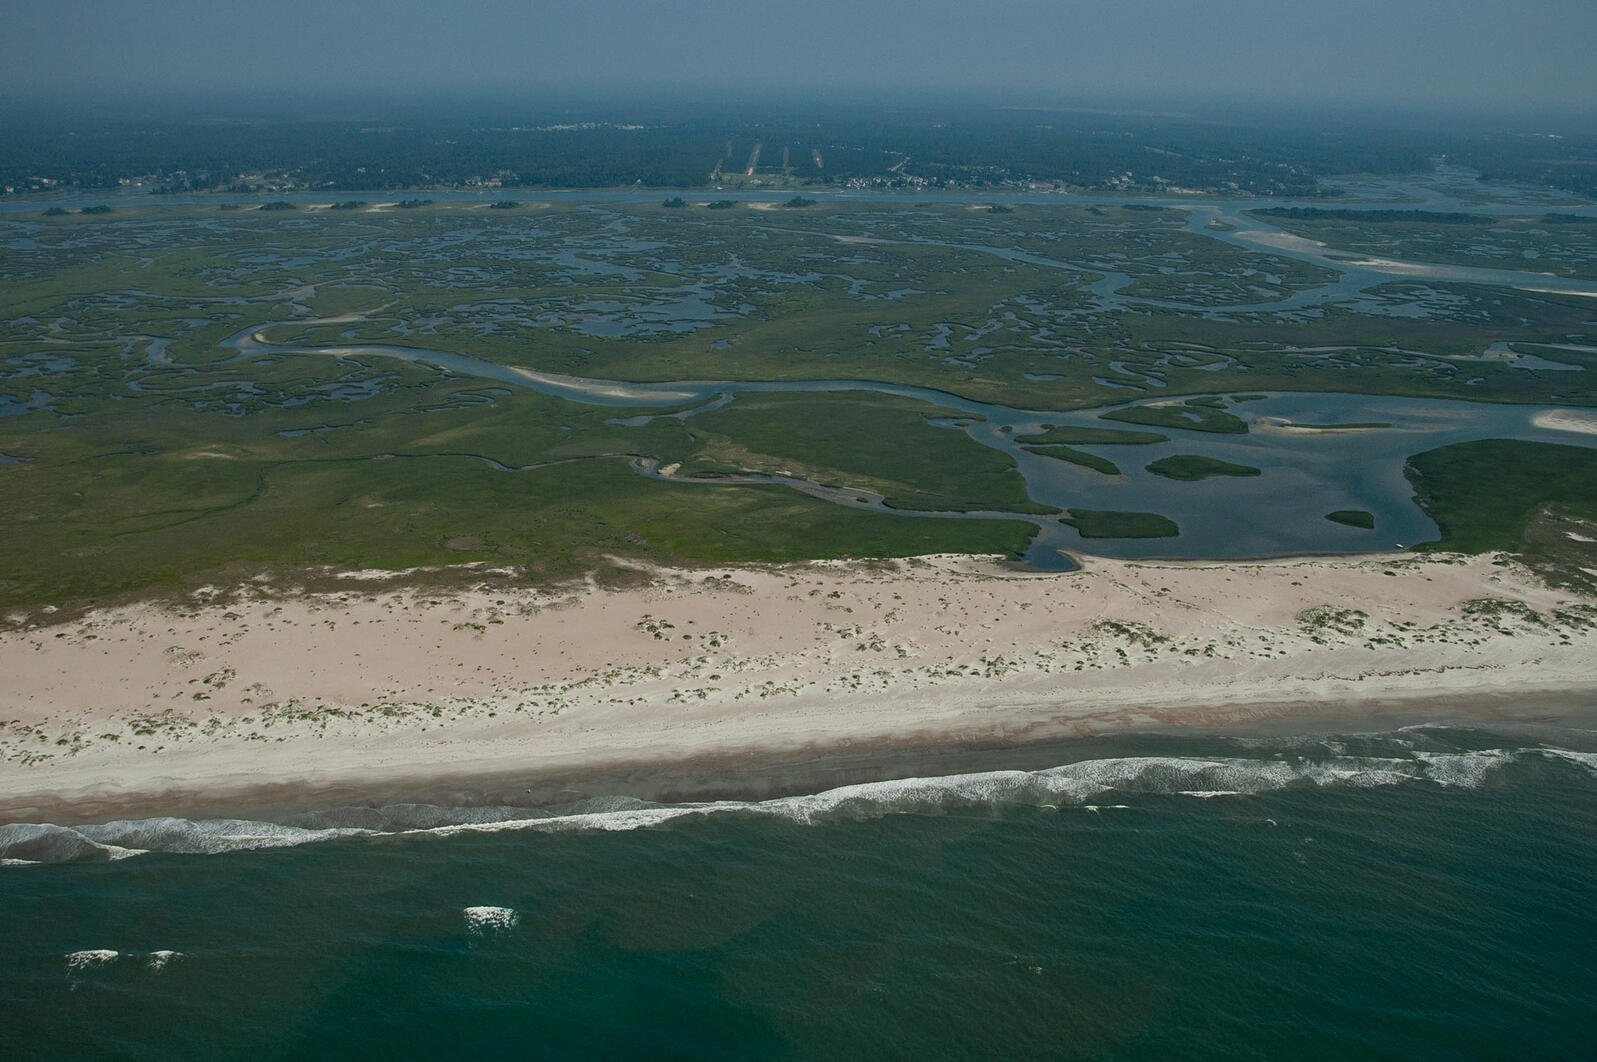 One of the North Carolina's few undeveloped barrier islands, Lea-Hutaff Island protects mainland communities from storm surge and sea-level rise. Walker Golder